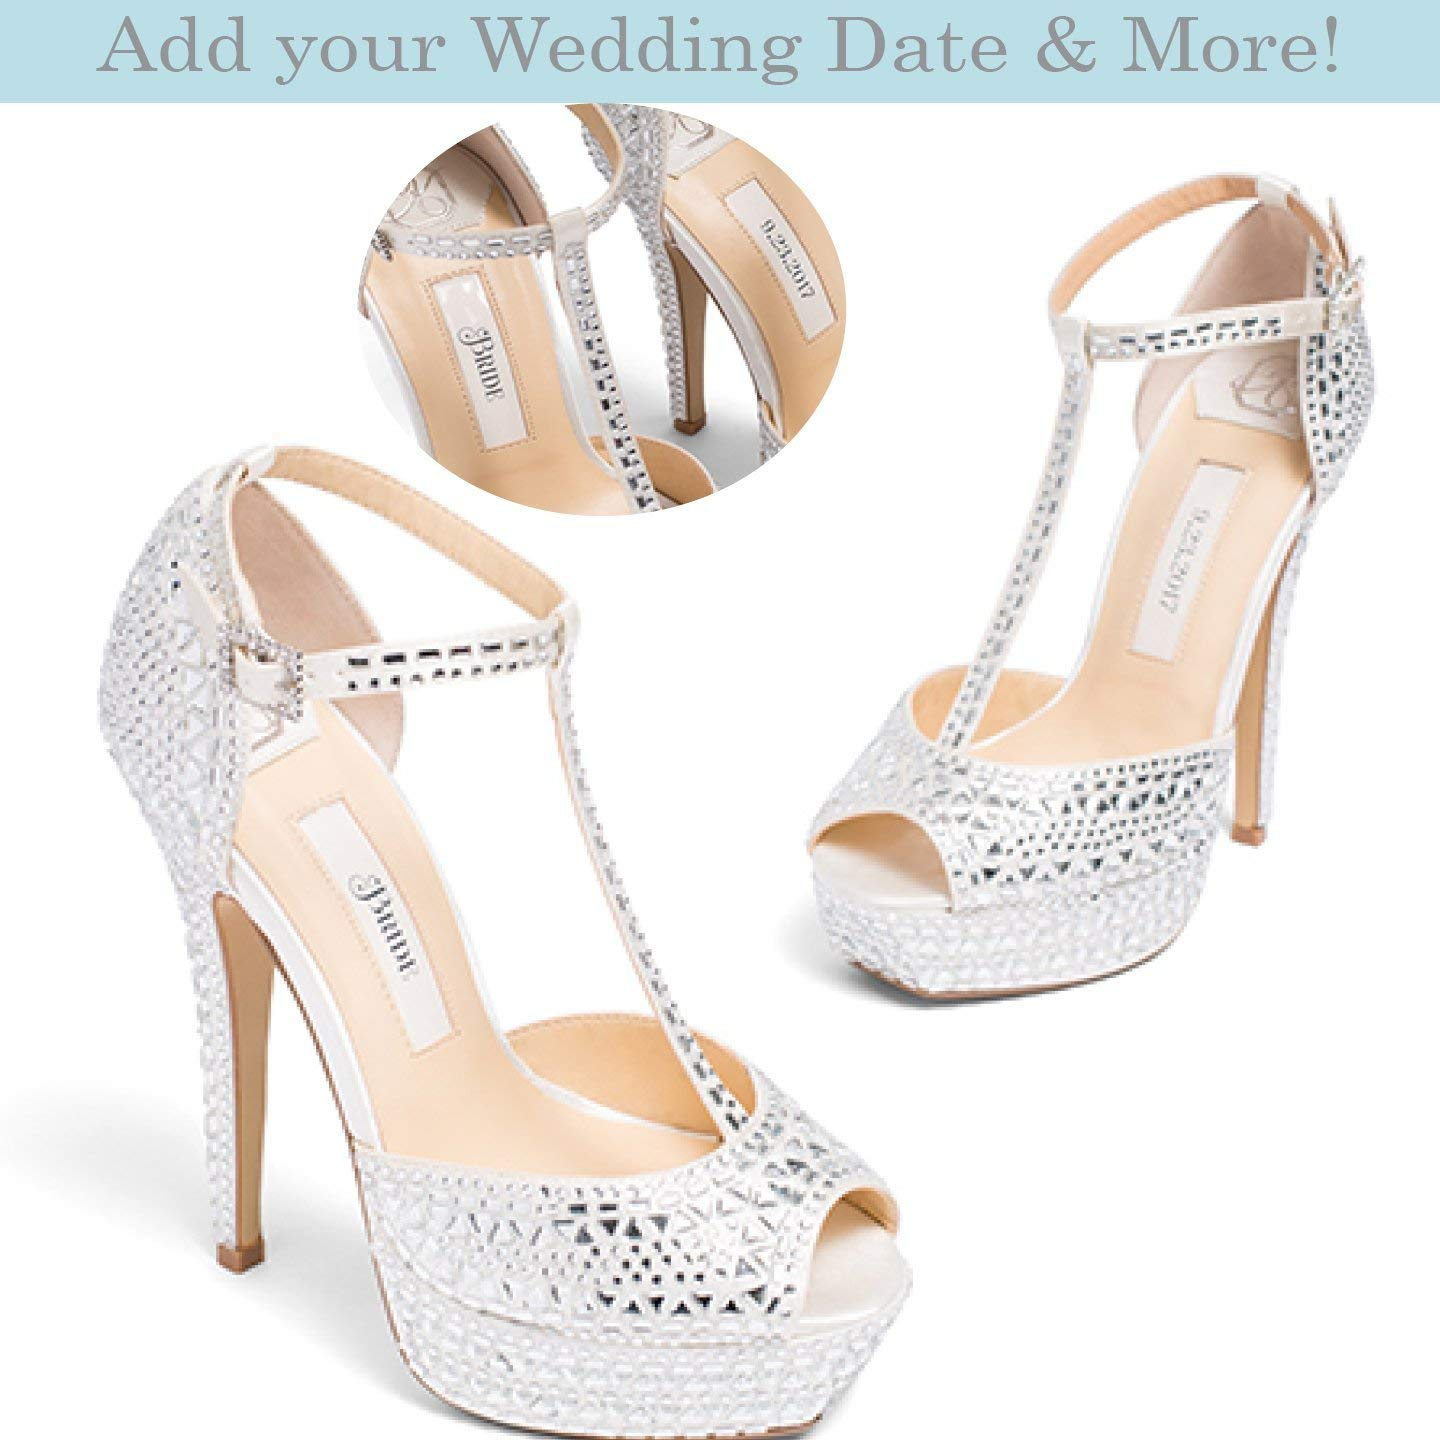 Bridal Women s Platform High Heel Satin Wedding Shoe with Rhinestone  Encrusted Heel in Ivory– Kate 1d42a33645dd